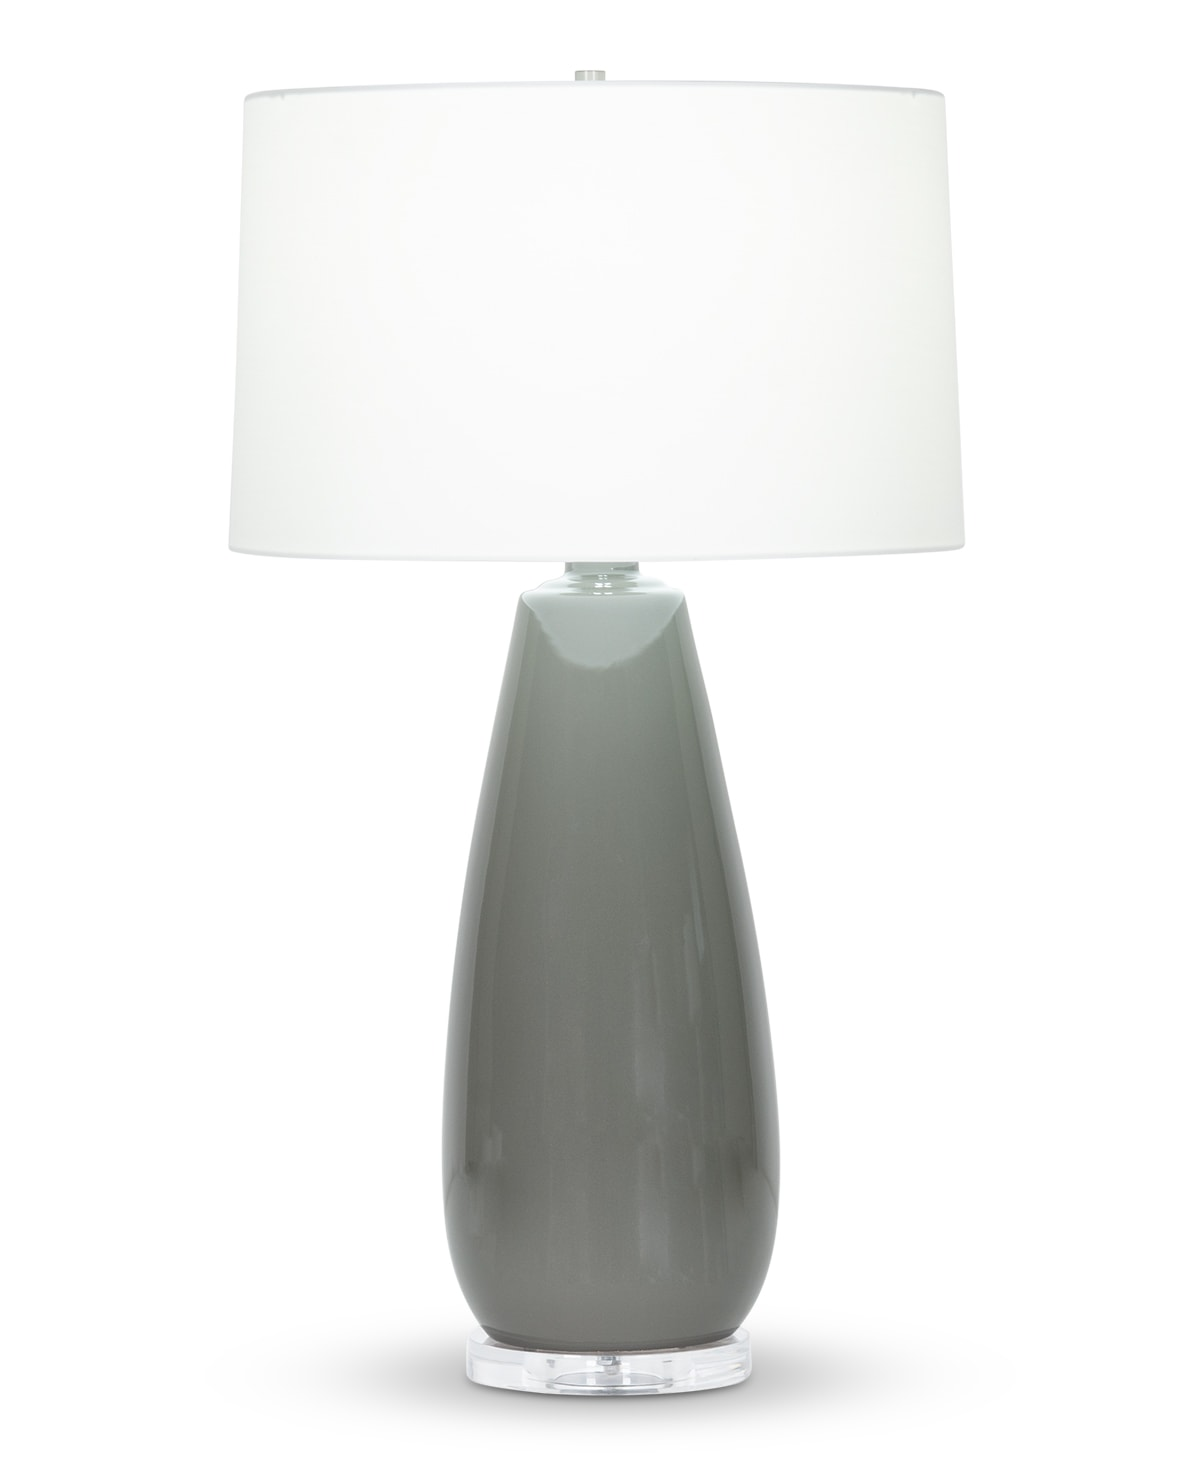 FlowDecor Aniston Table Lamp in ceramic with charcoal grey finish and off-white cotton tapered drum shade (# 4431)